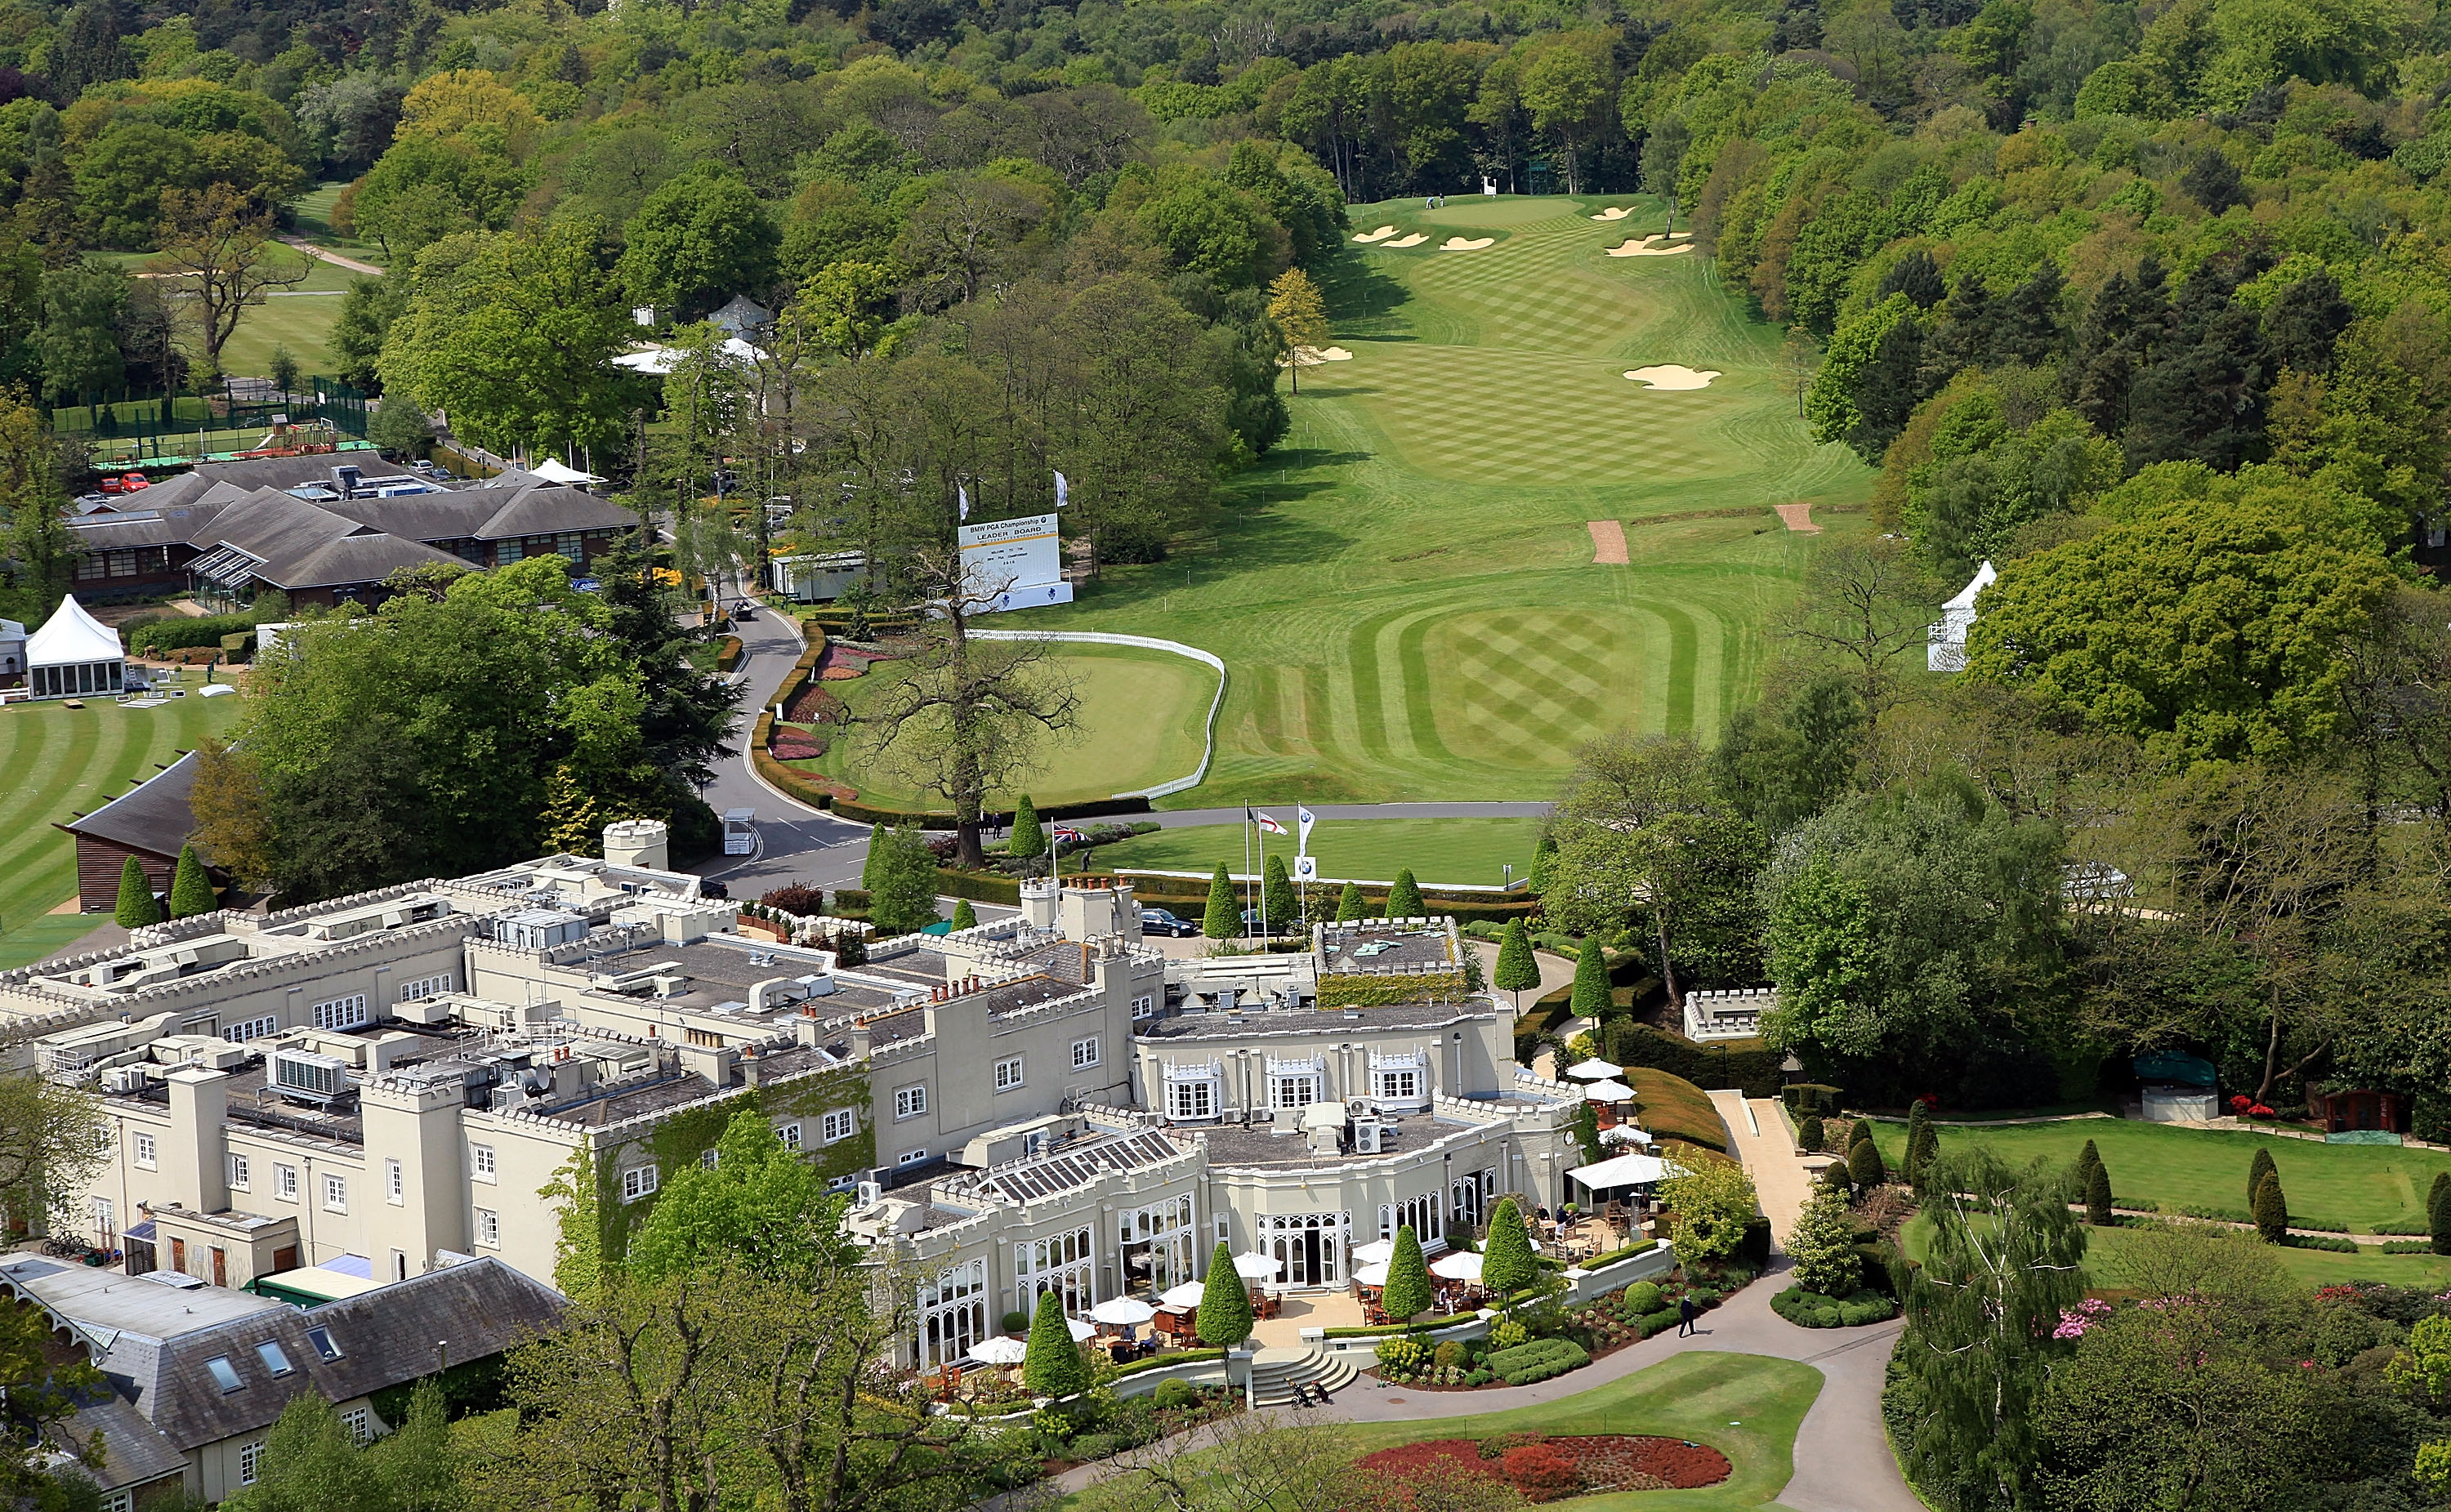 Wentworth is the headquarters of the European Tour (Photo: Getty Images)